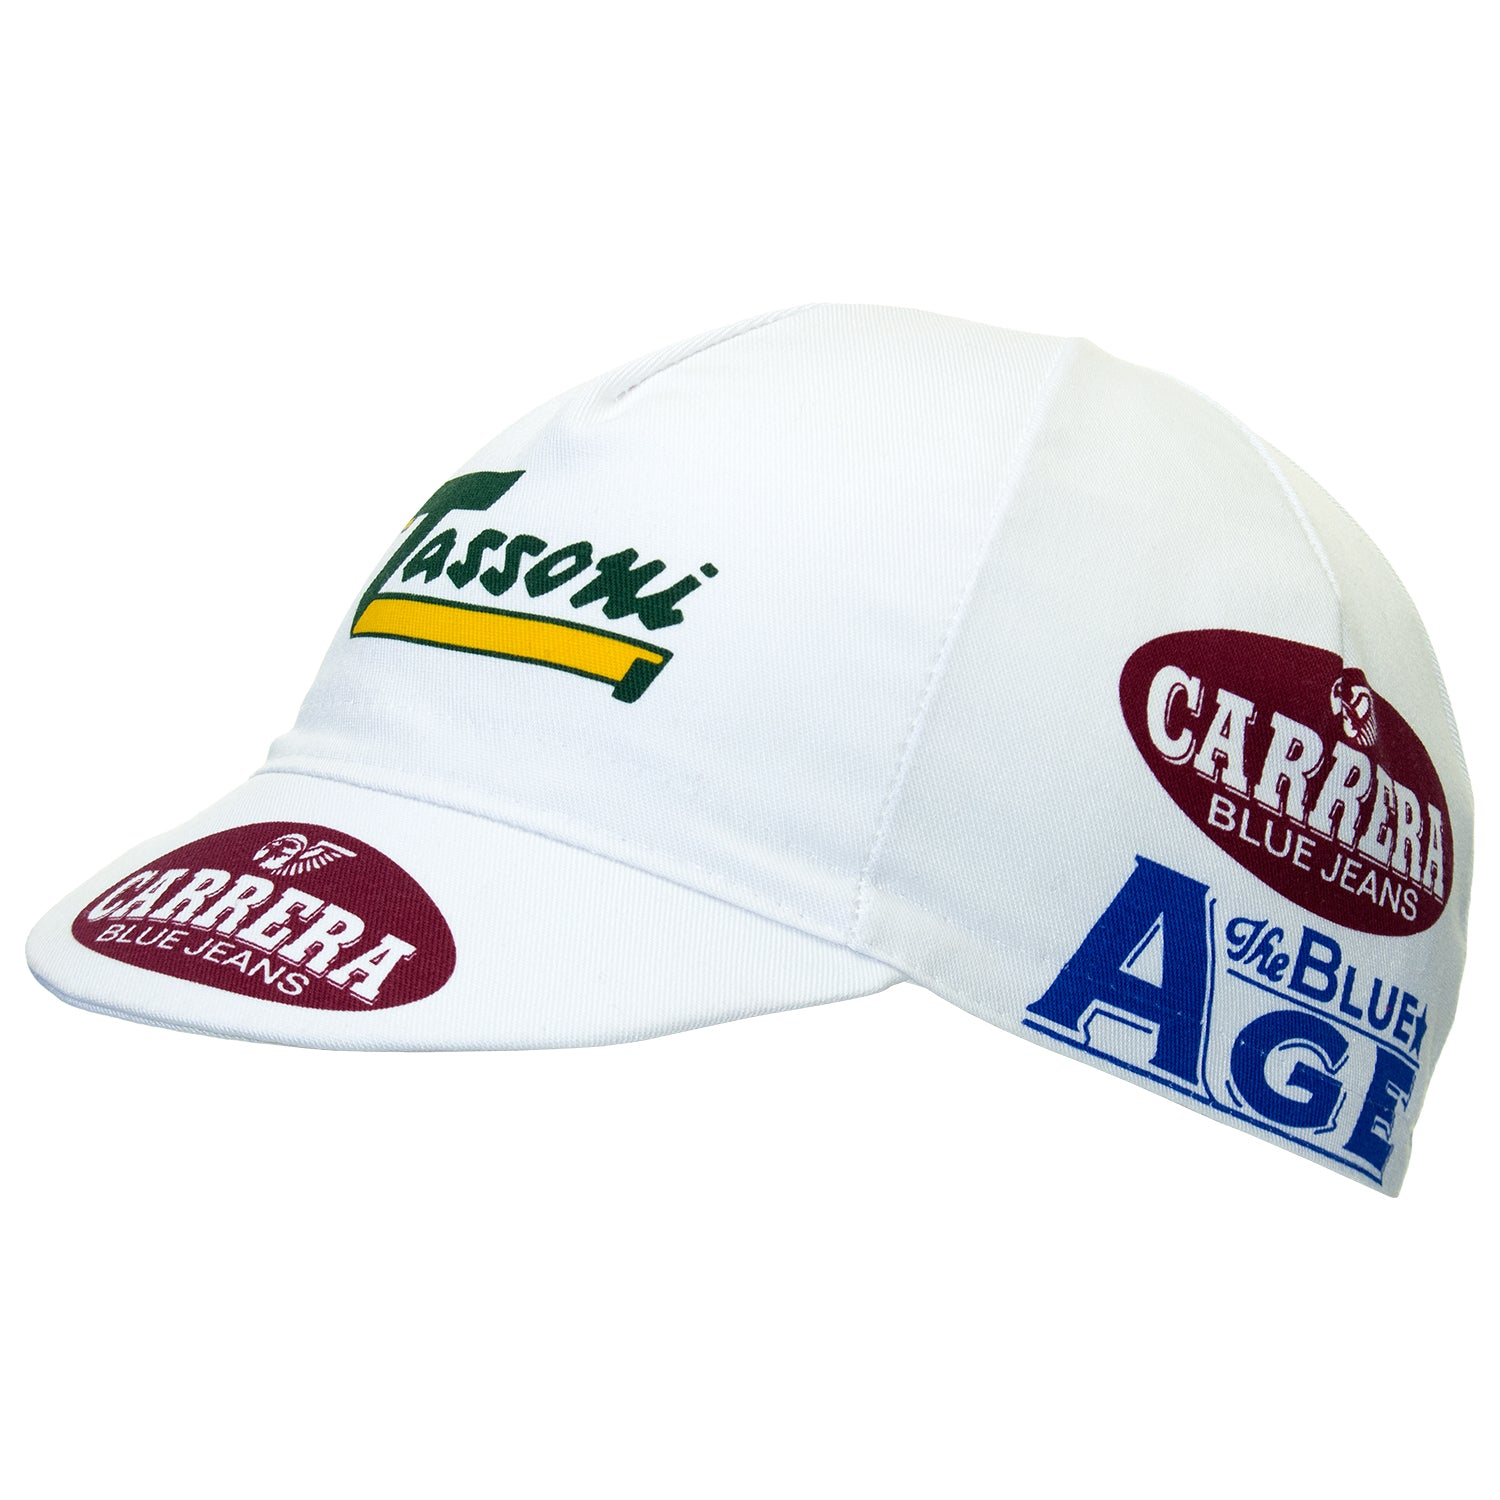 Carrera Jeans/Tassoni Retro Cotton Cycling Cap